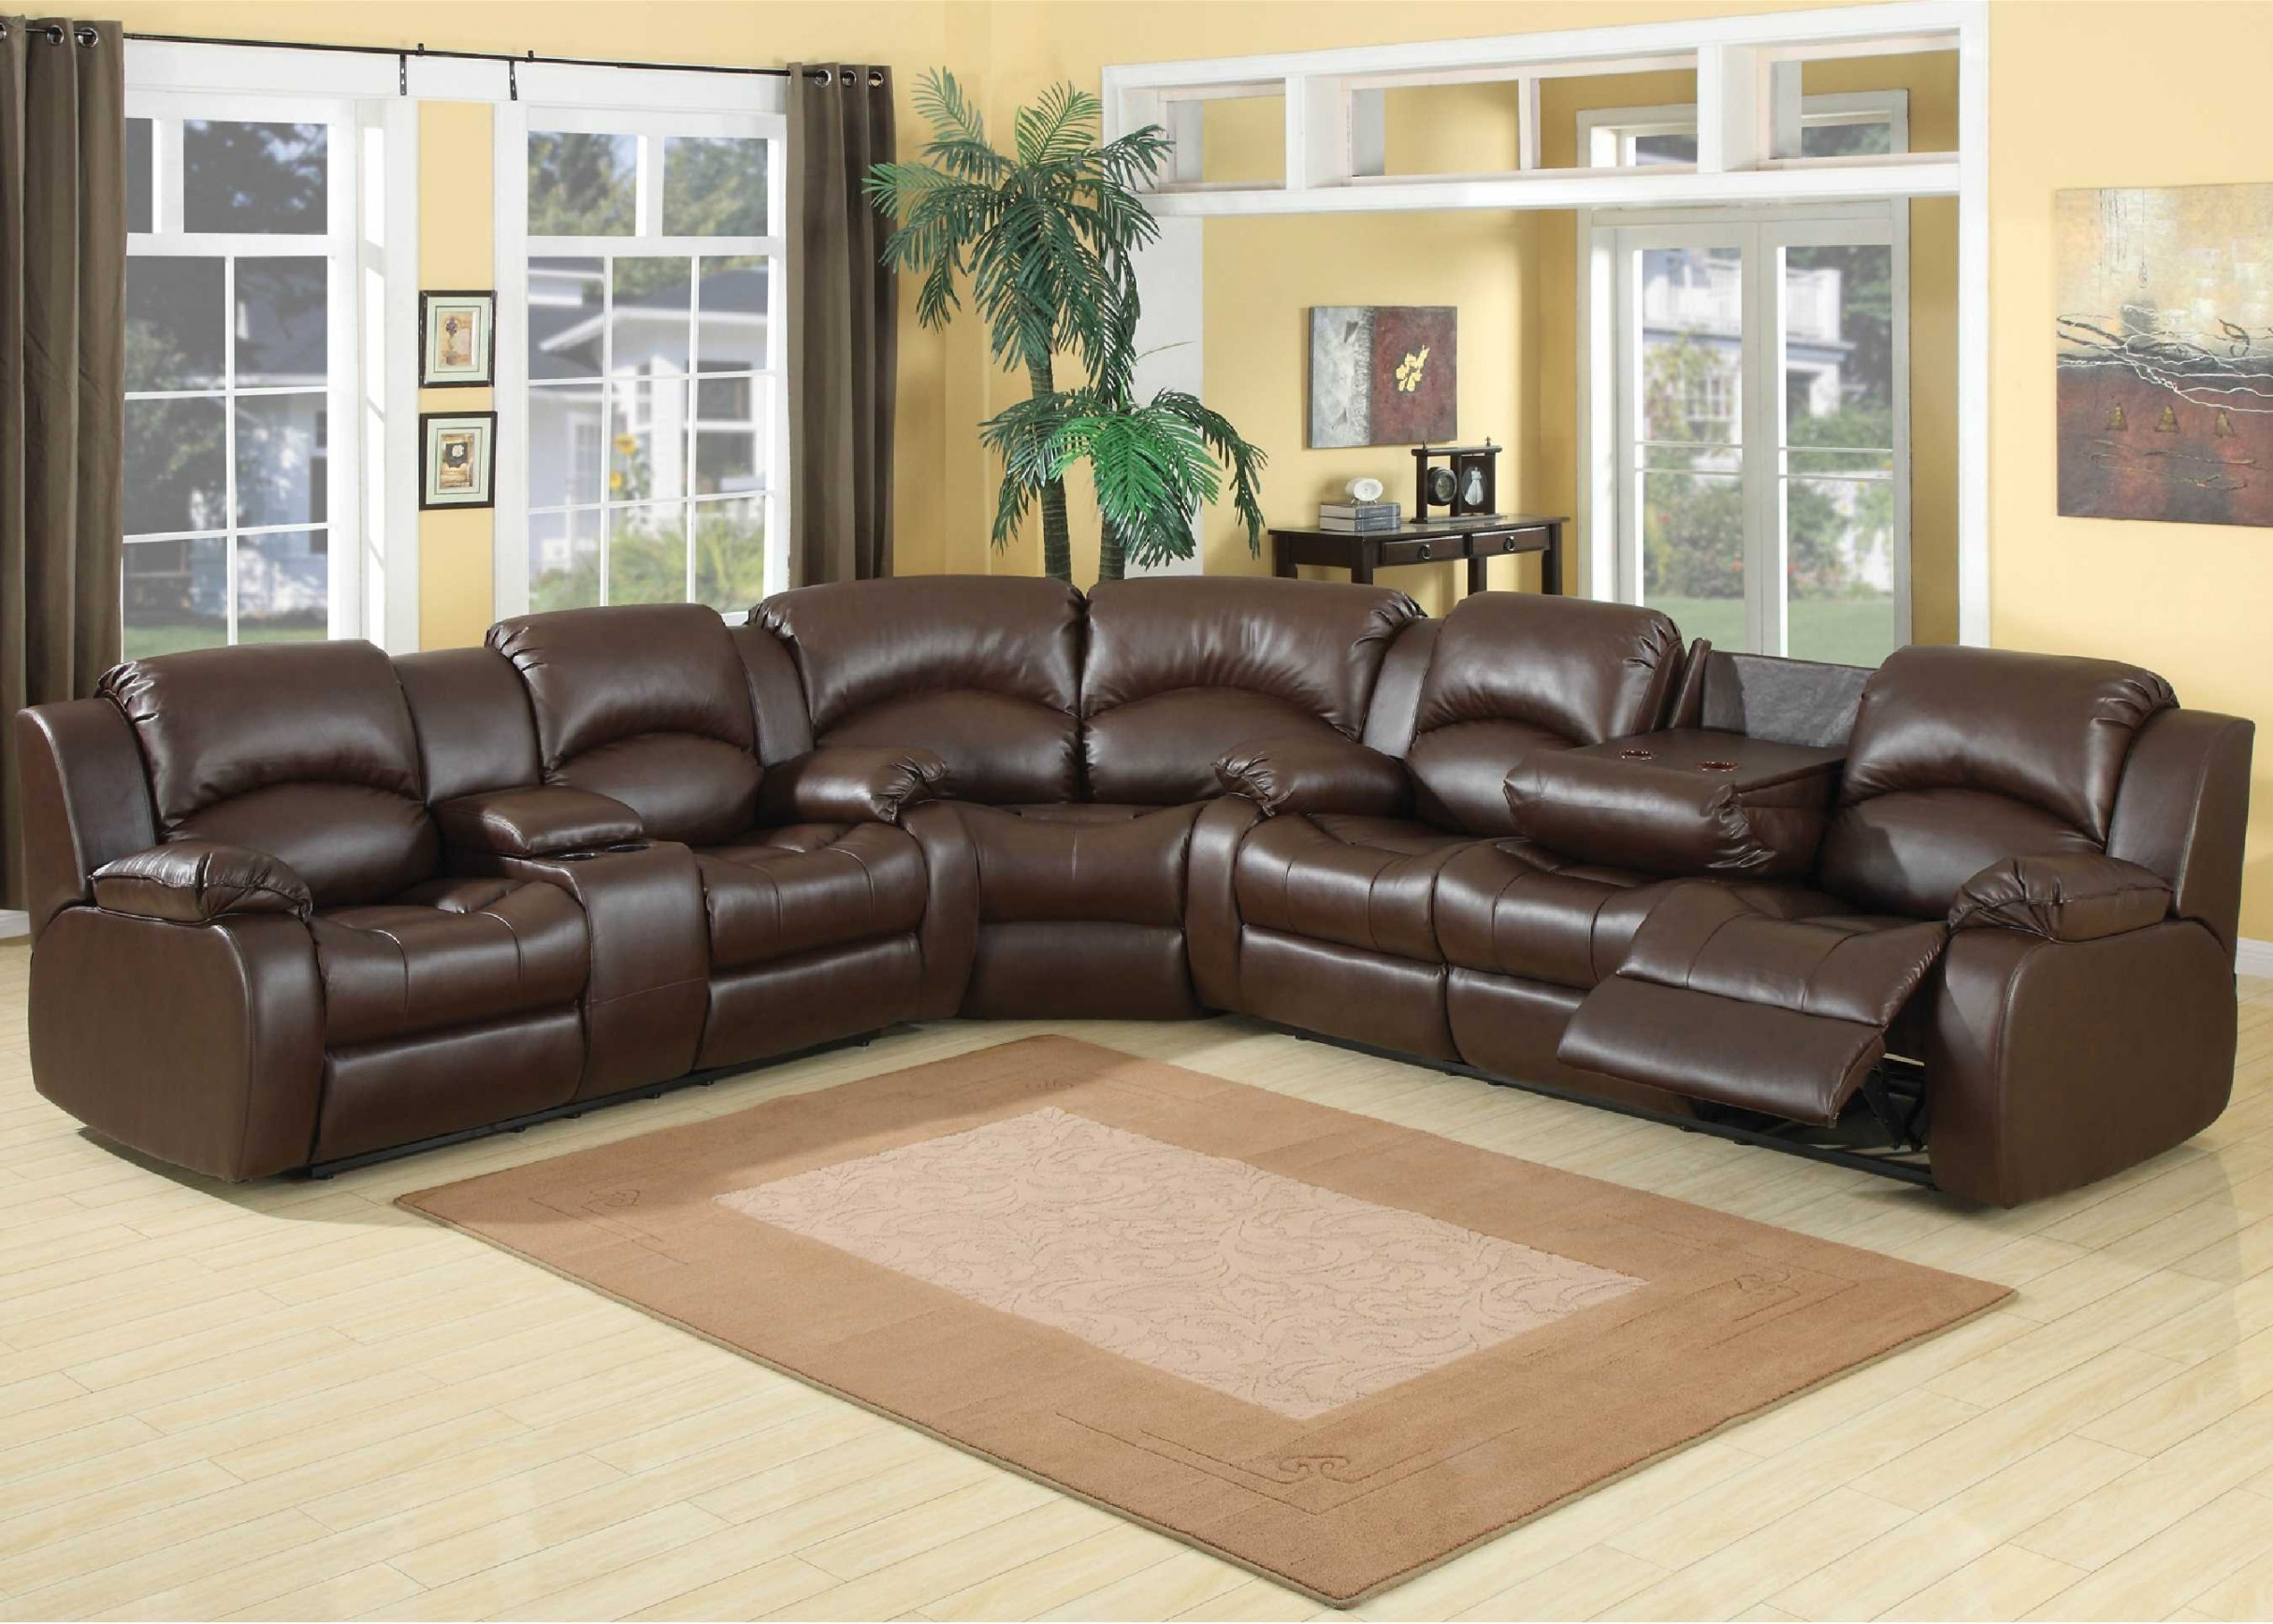 Leather Sectional Couch With Recliners | Things Mag | Sofa | Chair Pertaining To Sectional Sofas With Recliners (View 8 of 15)